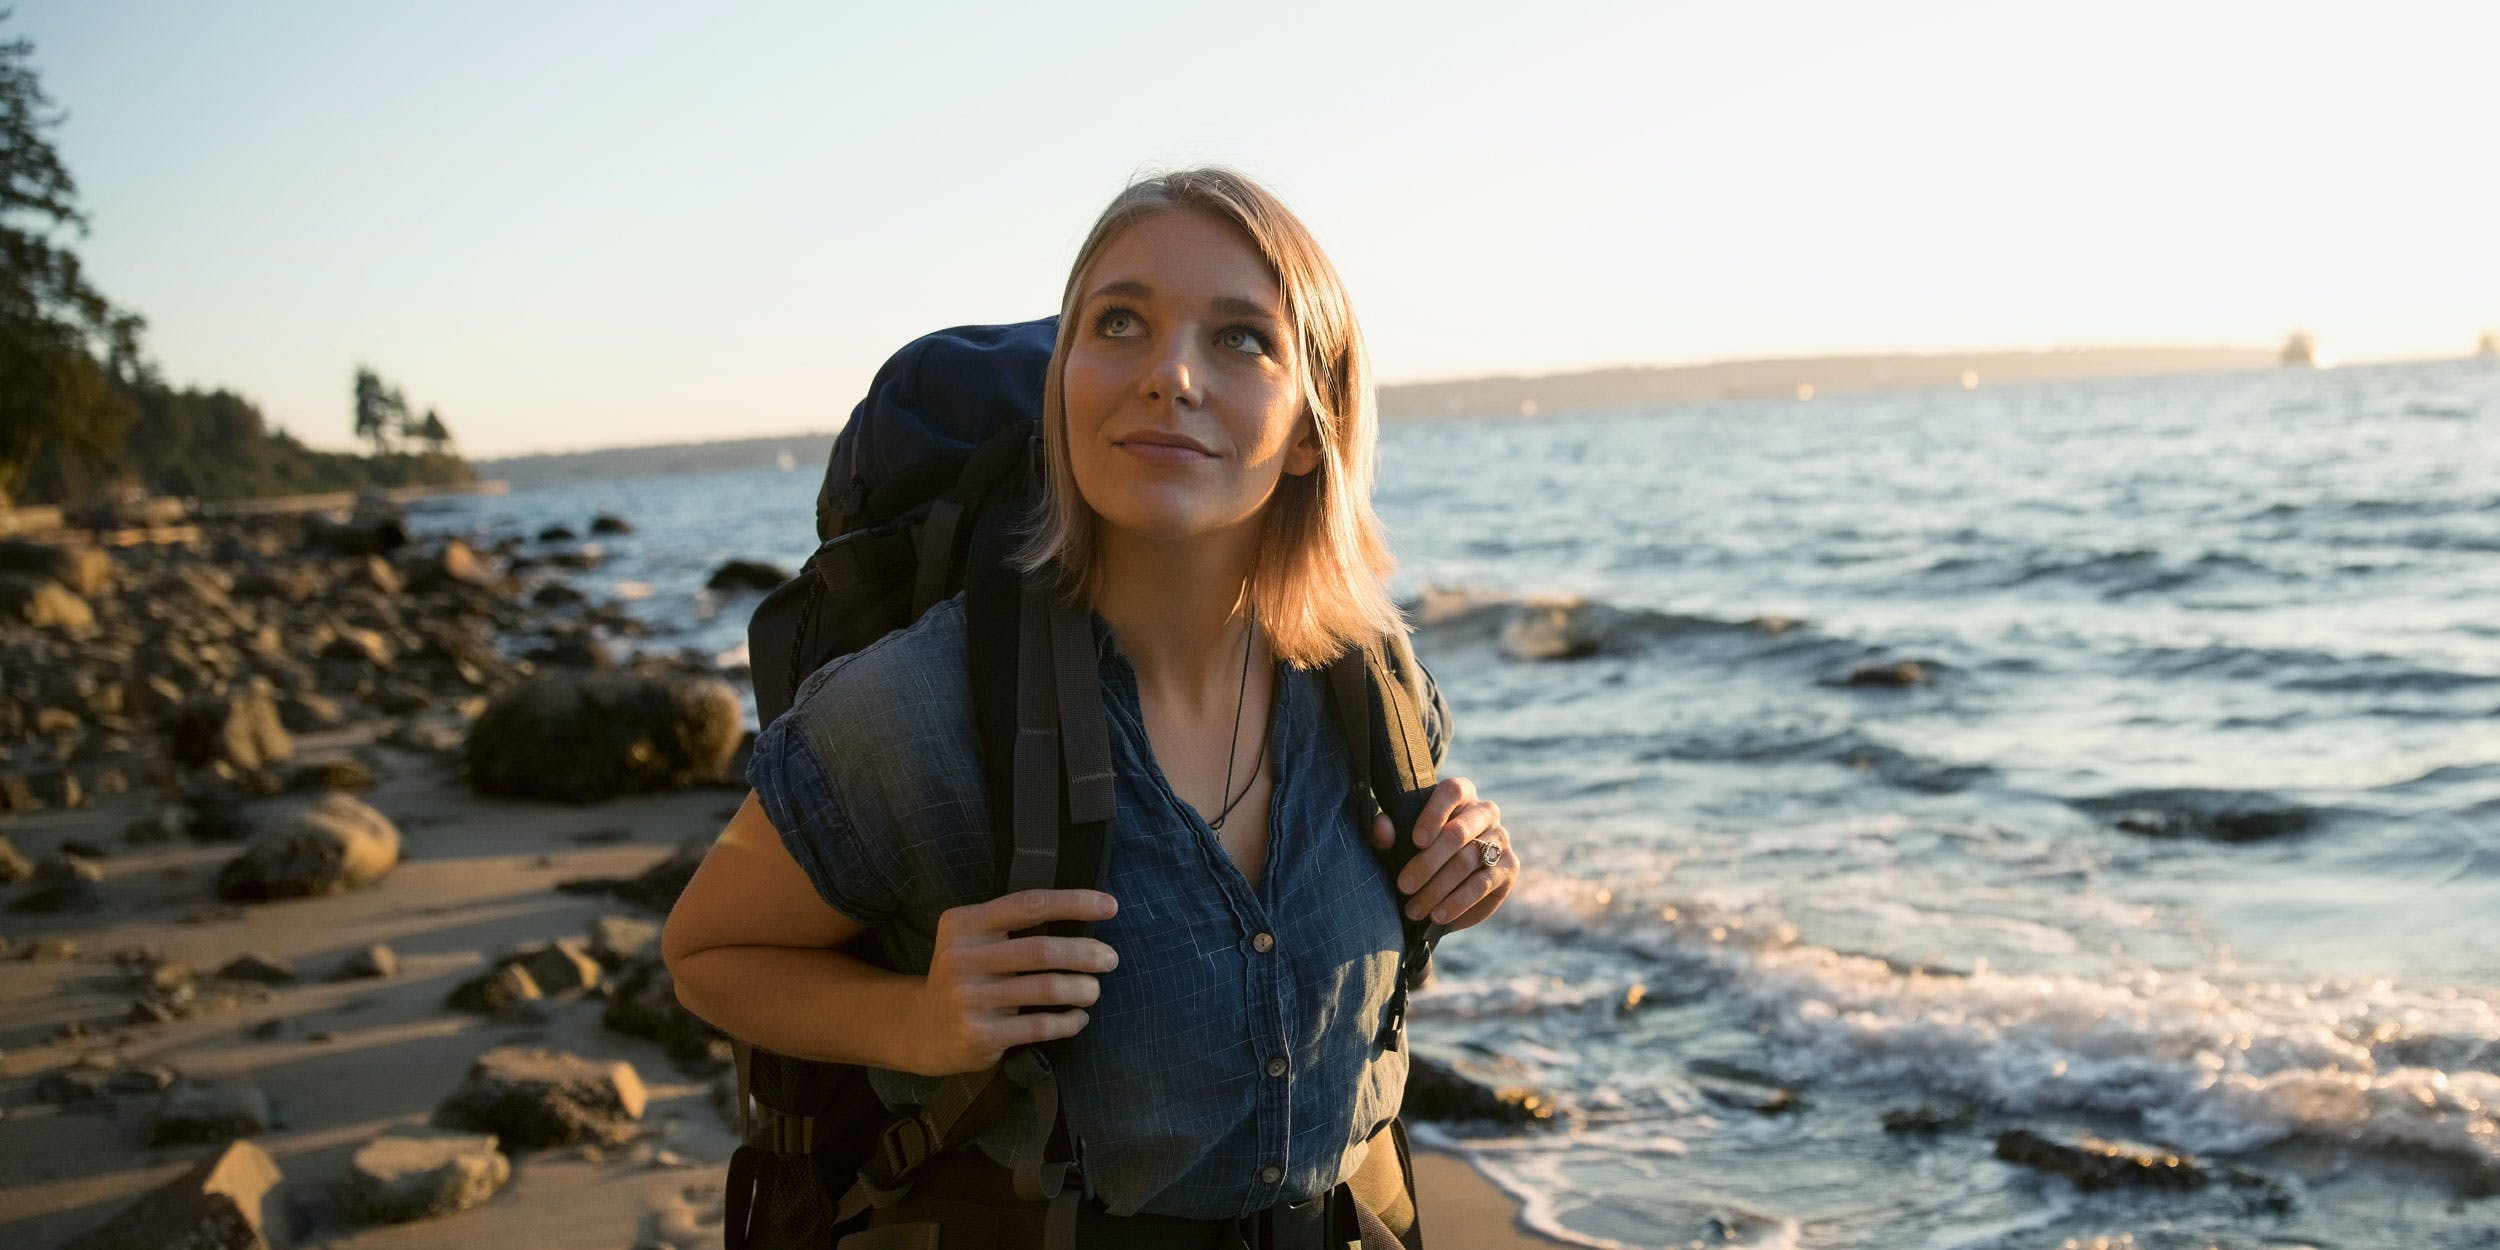 A young woman uses CBD for anxiety to help her get outdoors and enjoy her life to the fullest